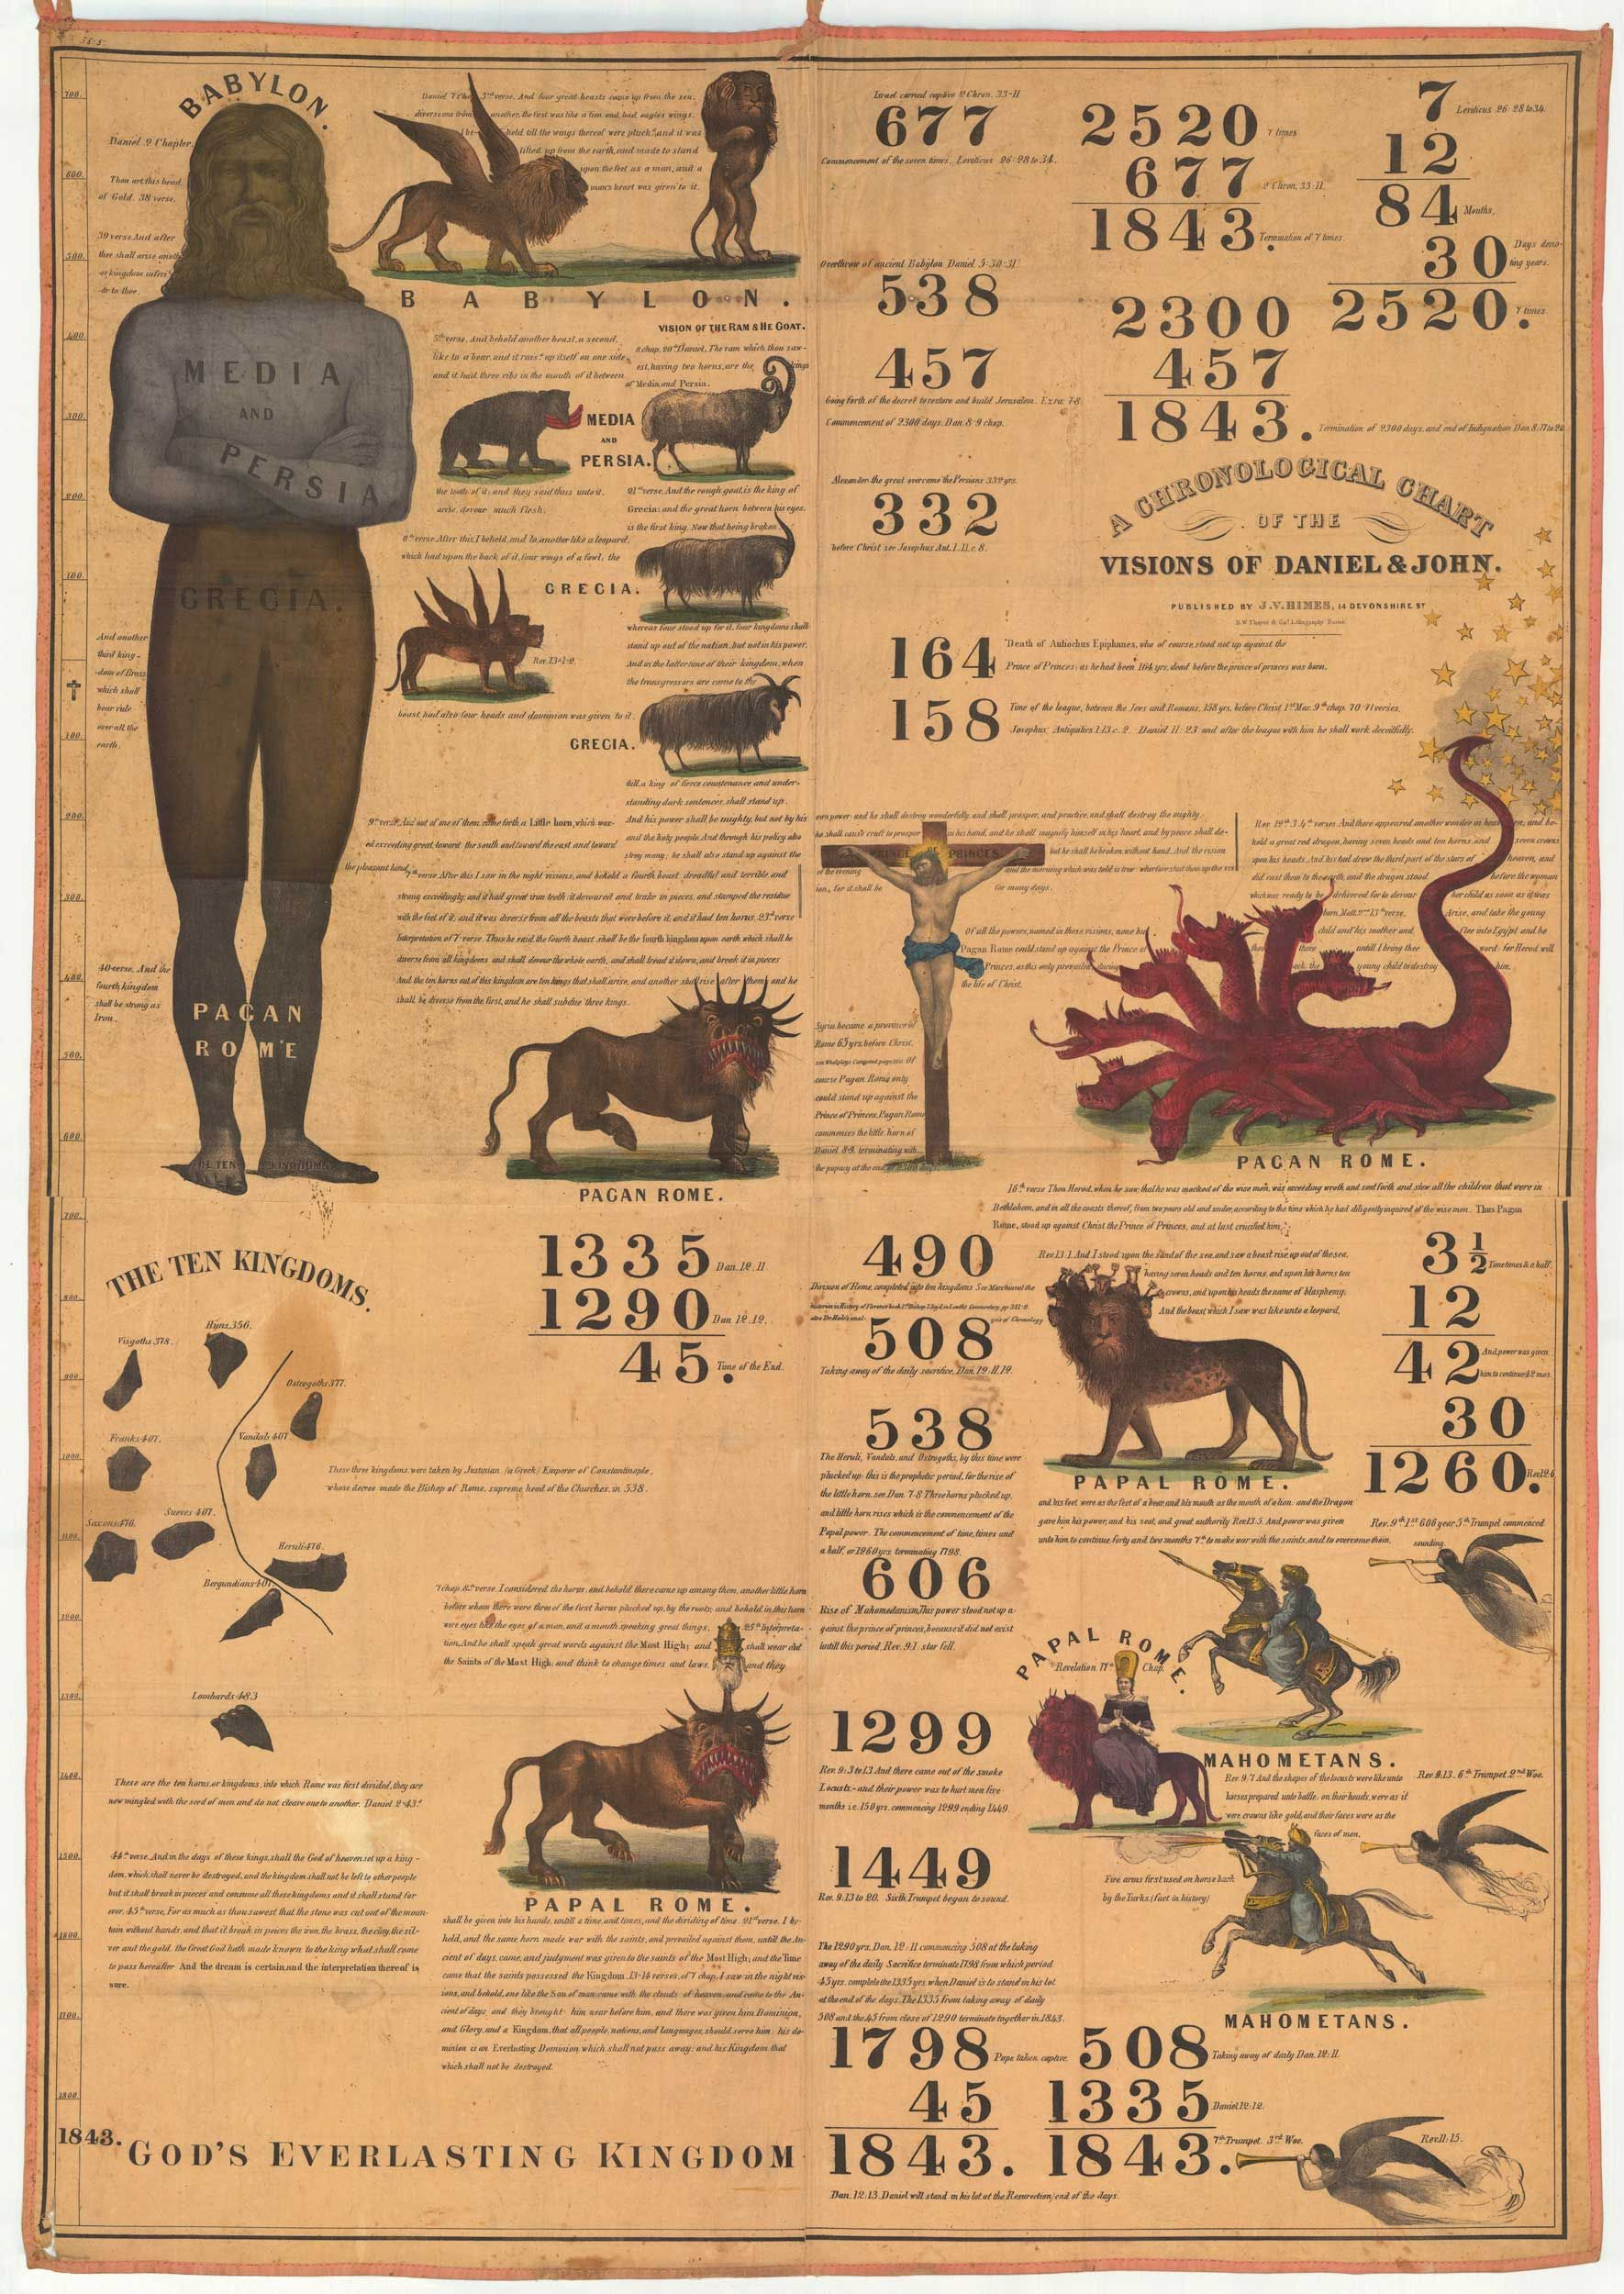 A chronological chart of the visions of daniel and john click a chronological chart of the visions of daniel and john a millerite chart by joshua himes integrating timeline apocalyptic symbolism and chronological buycottarizona